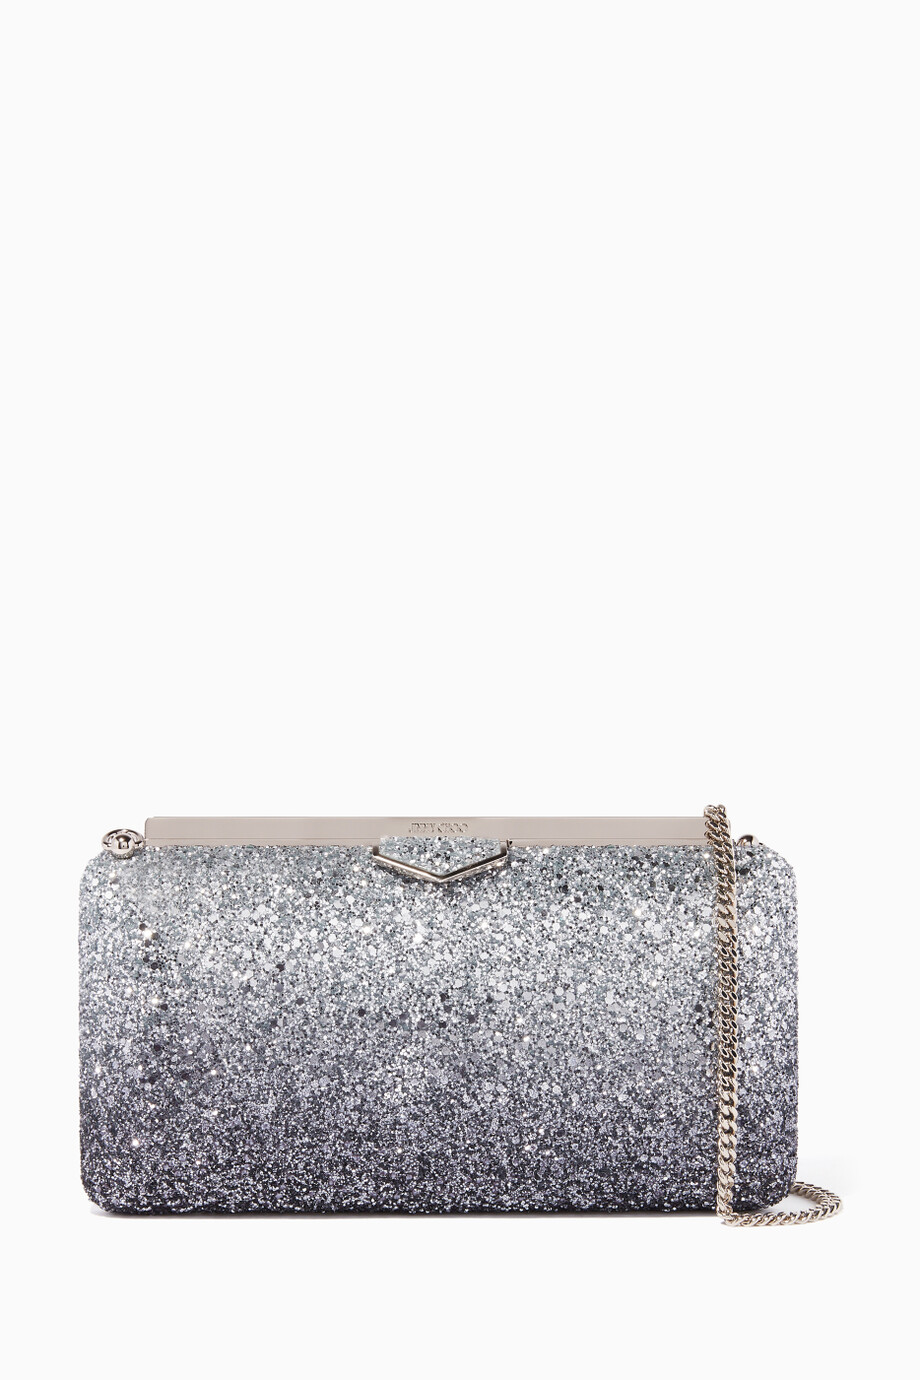 519603d461fb Shop Jimmy Choo Silver Navy   Silver Ellipse Coarse Glitter Clutch ...